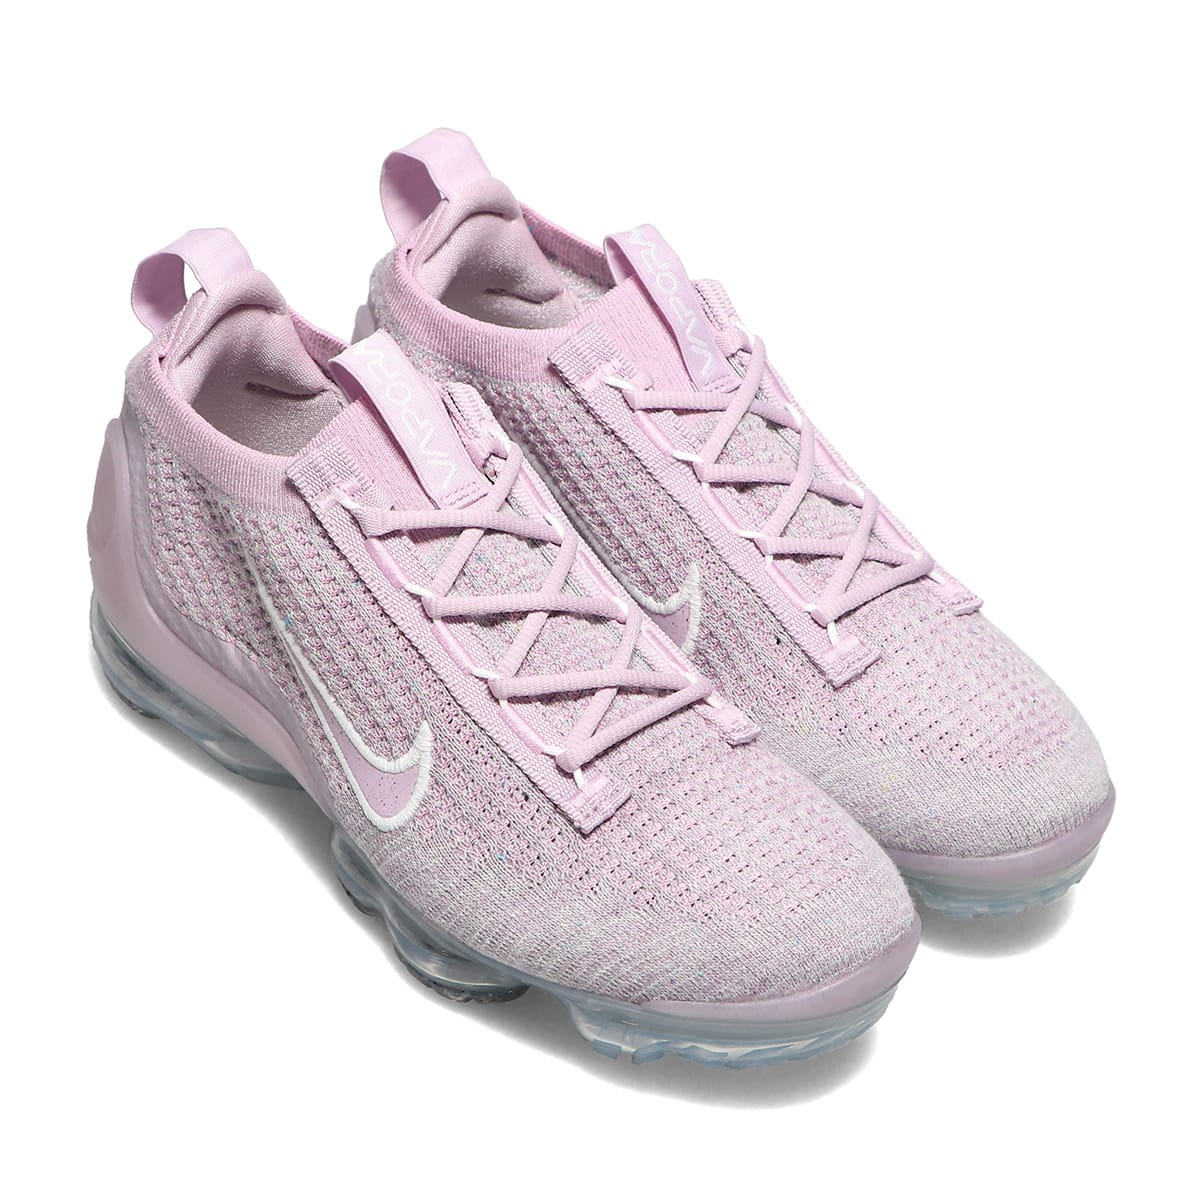 NIKE W AIR VAPORMAX 2021 FK LT ARCTIC PINK/ICED LILAC-SUMMIT WHITE 21SU-I_photo_large